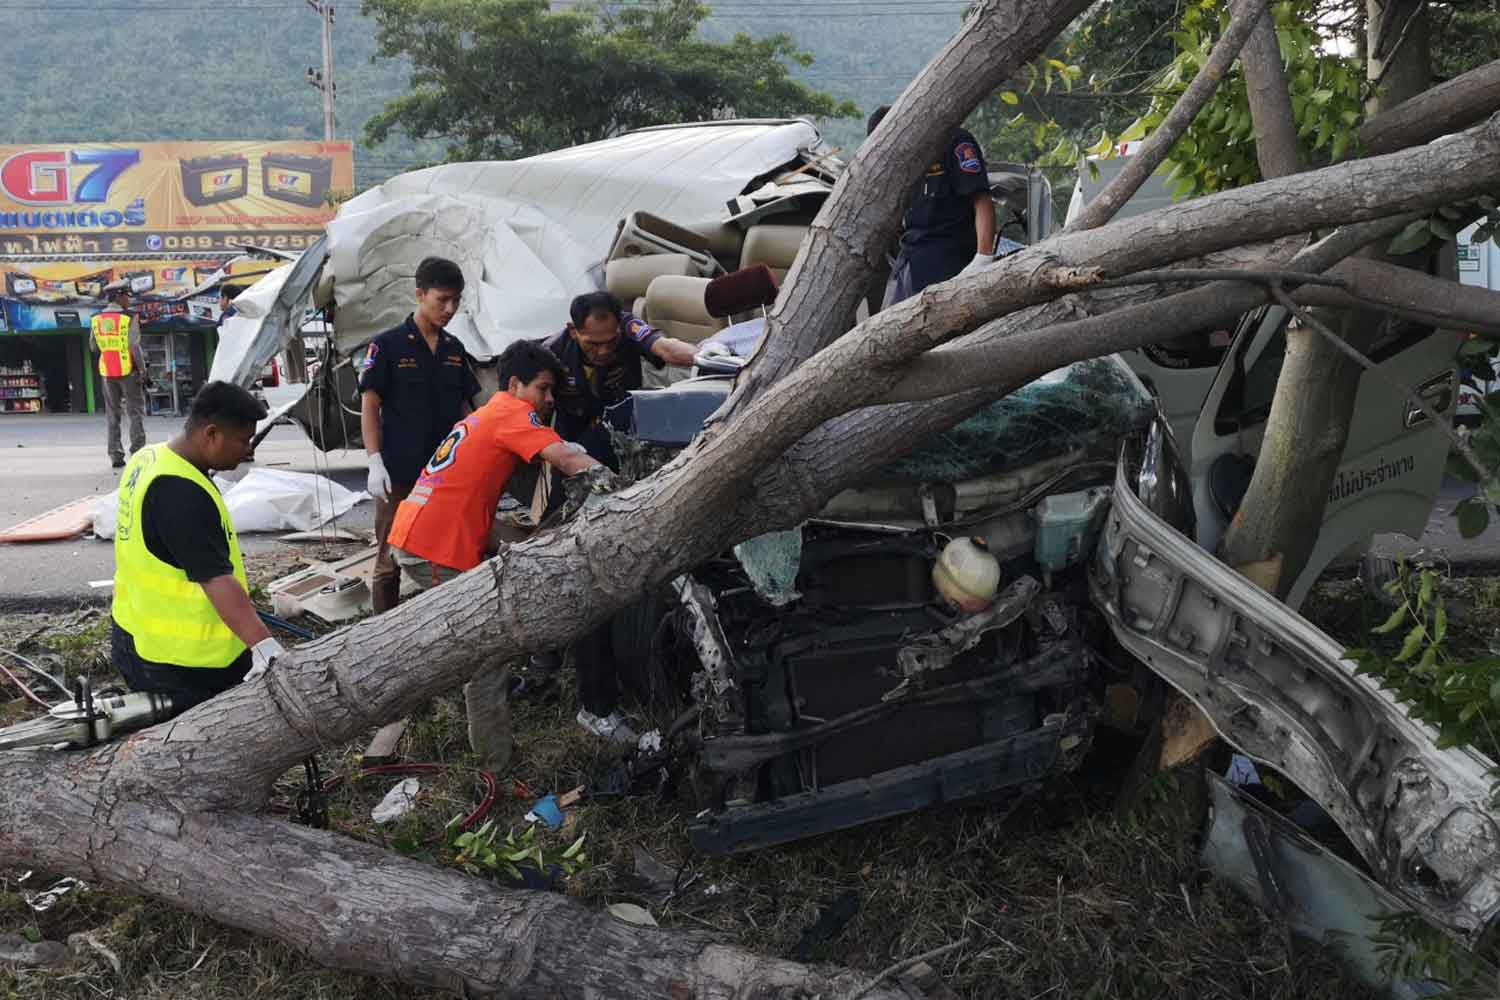 Rescue workers at the scene of the crash which claimed the life of the van driver and three passengers, in Muang district of Prachuap Khiri Khan, on Monday morning. (Photo by Chaiwat Satyam)